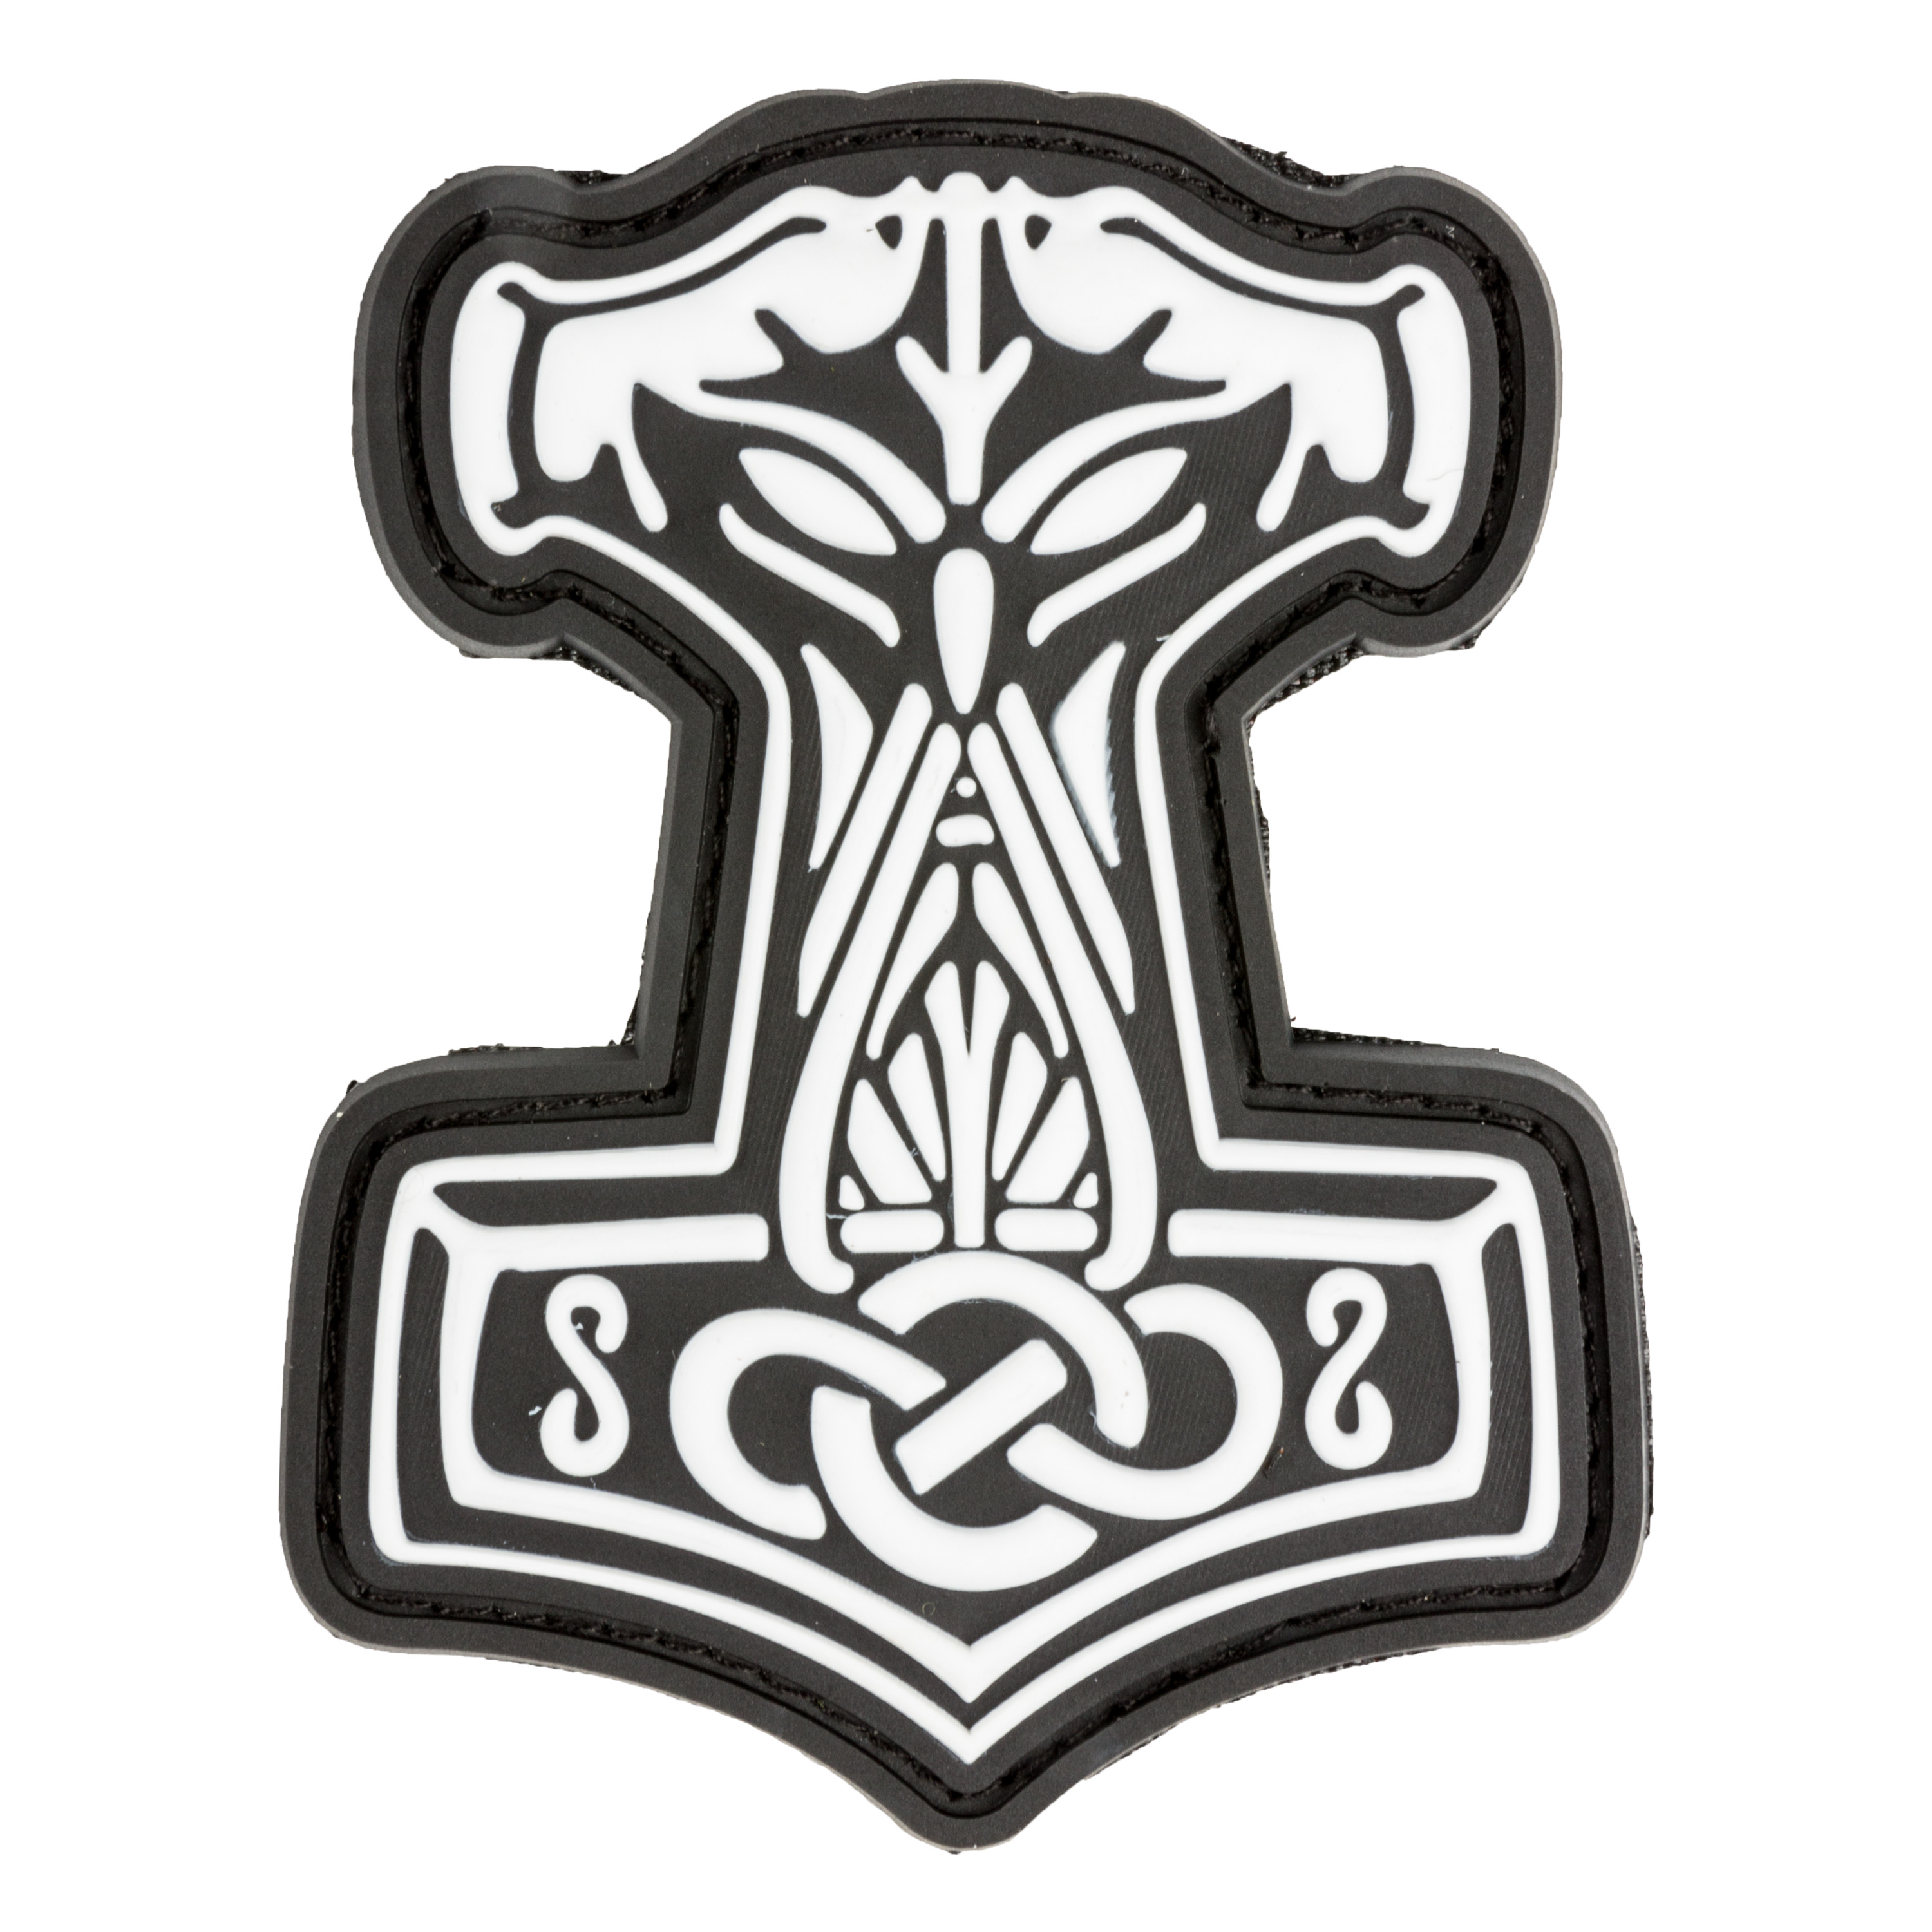 3D Patch Thors Hammer swat